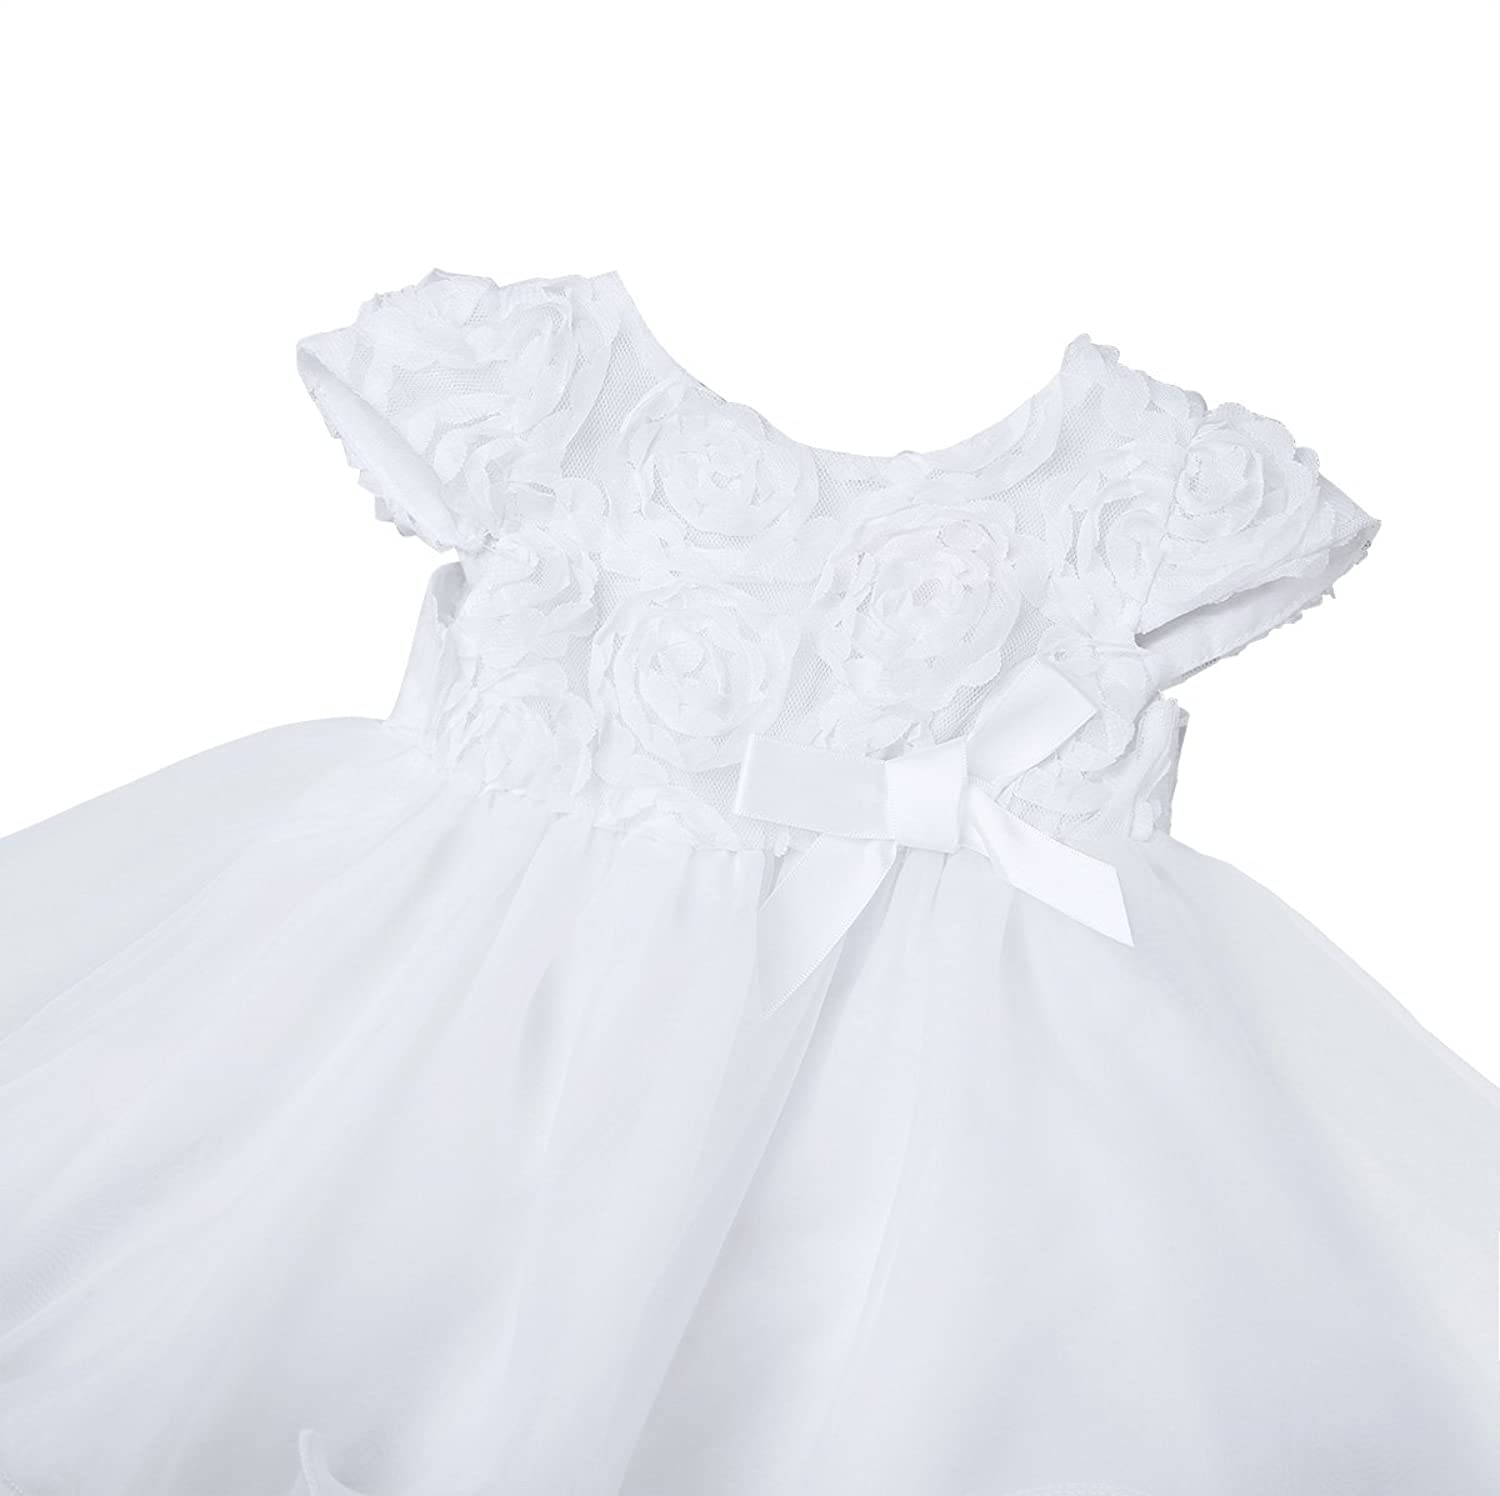 Amazon.com: iixpin Toddler Baby Girls Christening Baptism 3D Flower Dress Gown Wedding Party Formal Dresses Kids Princess White: Clothing